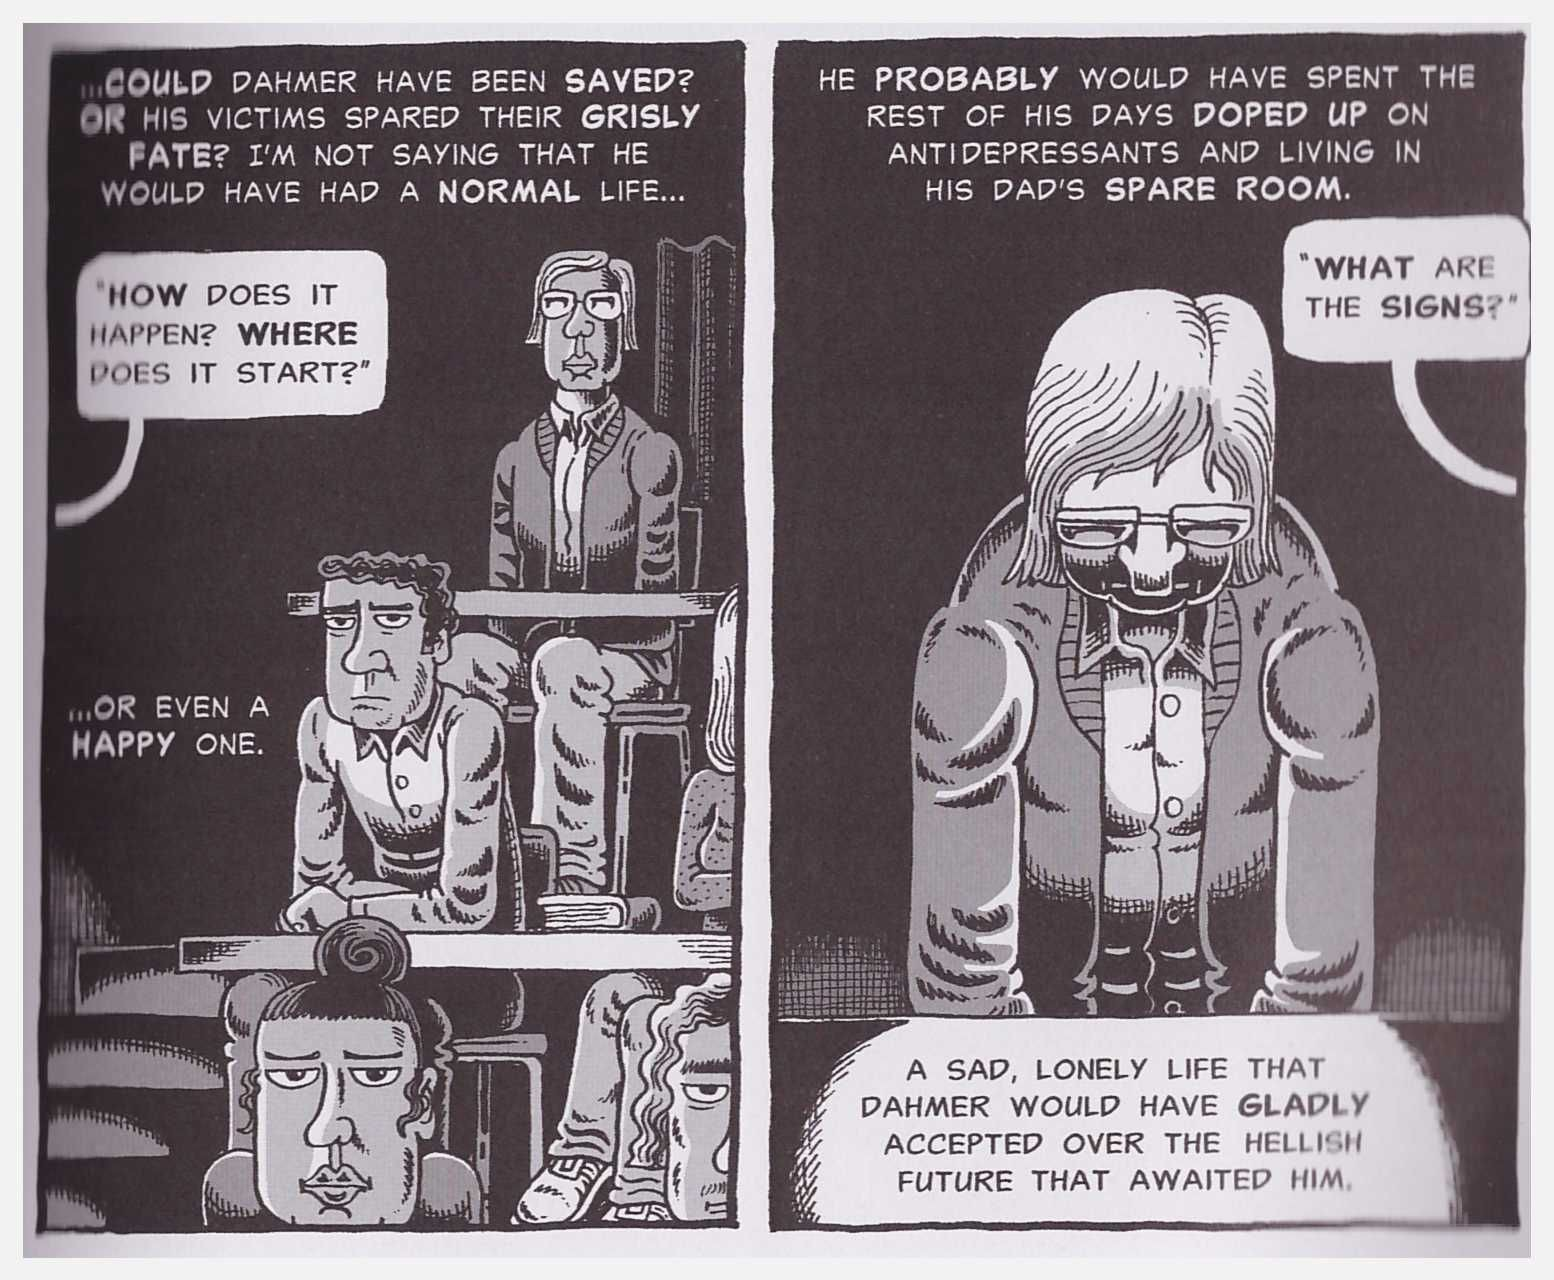 "Two panels from the graphic novel ""My Friend Dahmer."" In the first panel, Dahmer sits in a lecture hall behind two rows of students. A speech bubble coming from off-screen reads ""How does it happen? Where does it start?"" Non-bubbled text reads ""Could Dahmer have been saved? Or his victims spared their grisly fate? I'm not saying that he would have had a normal life, or even a happy one."" The second panel shows a closeup of Dahmer in his seat, looking down. A speech bubbled reads, ""What are the signs?"" Non-bubbled text reads, ""He probably would have spent the rest of his days doped up on antidepressants and living in his dad's spare room. A sad, lonely life that Dahmer would have gladly accepted over the hellish future that awaited him."""